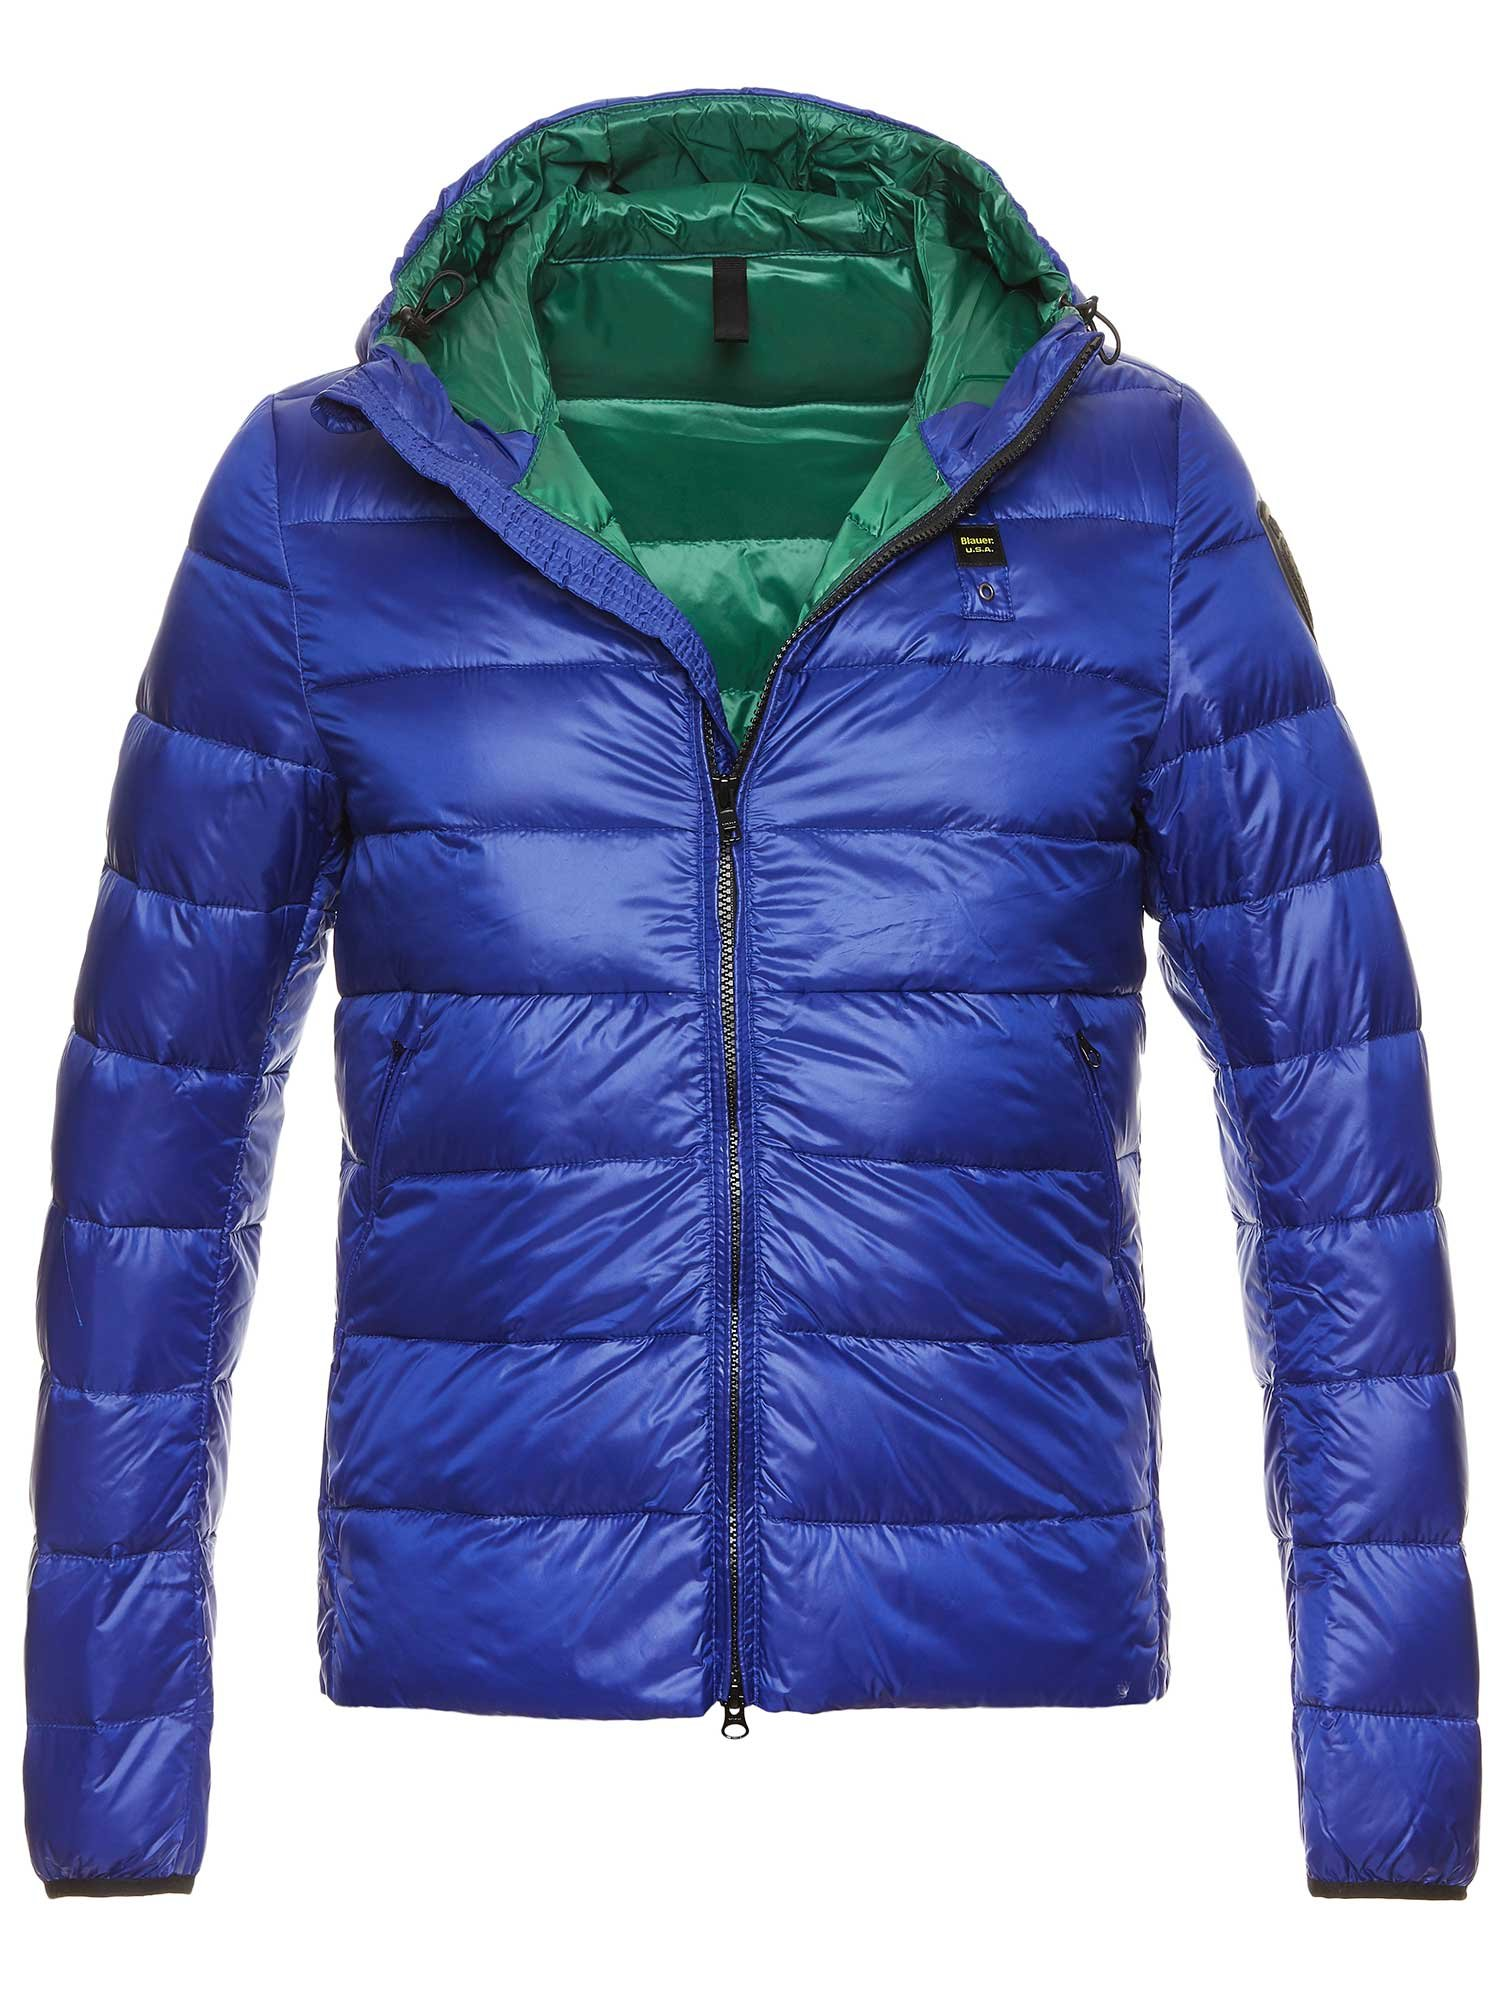 CHASE 100 GRAM DOWN JACKET WITH HOOD - Blauer